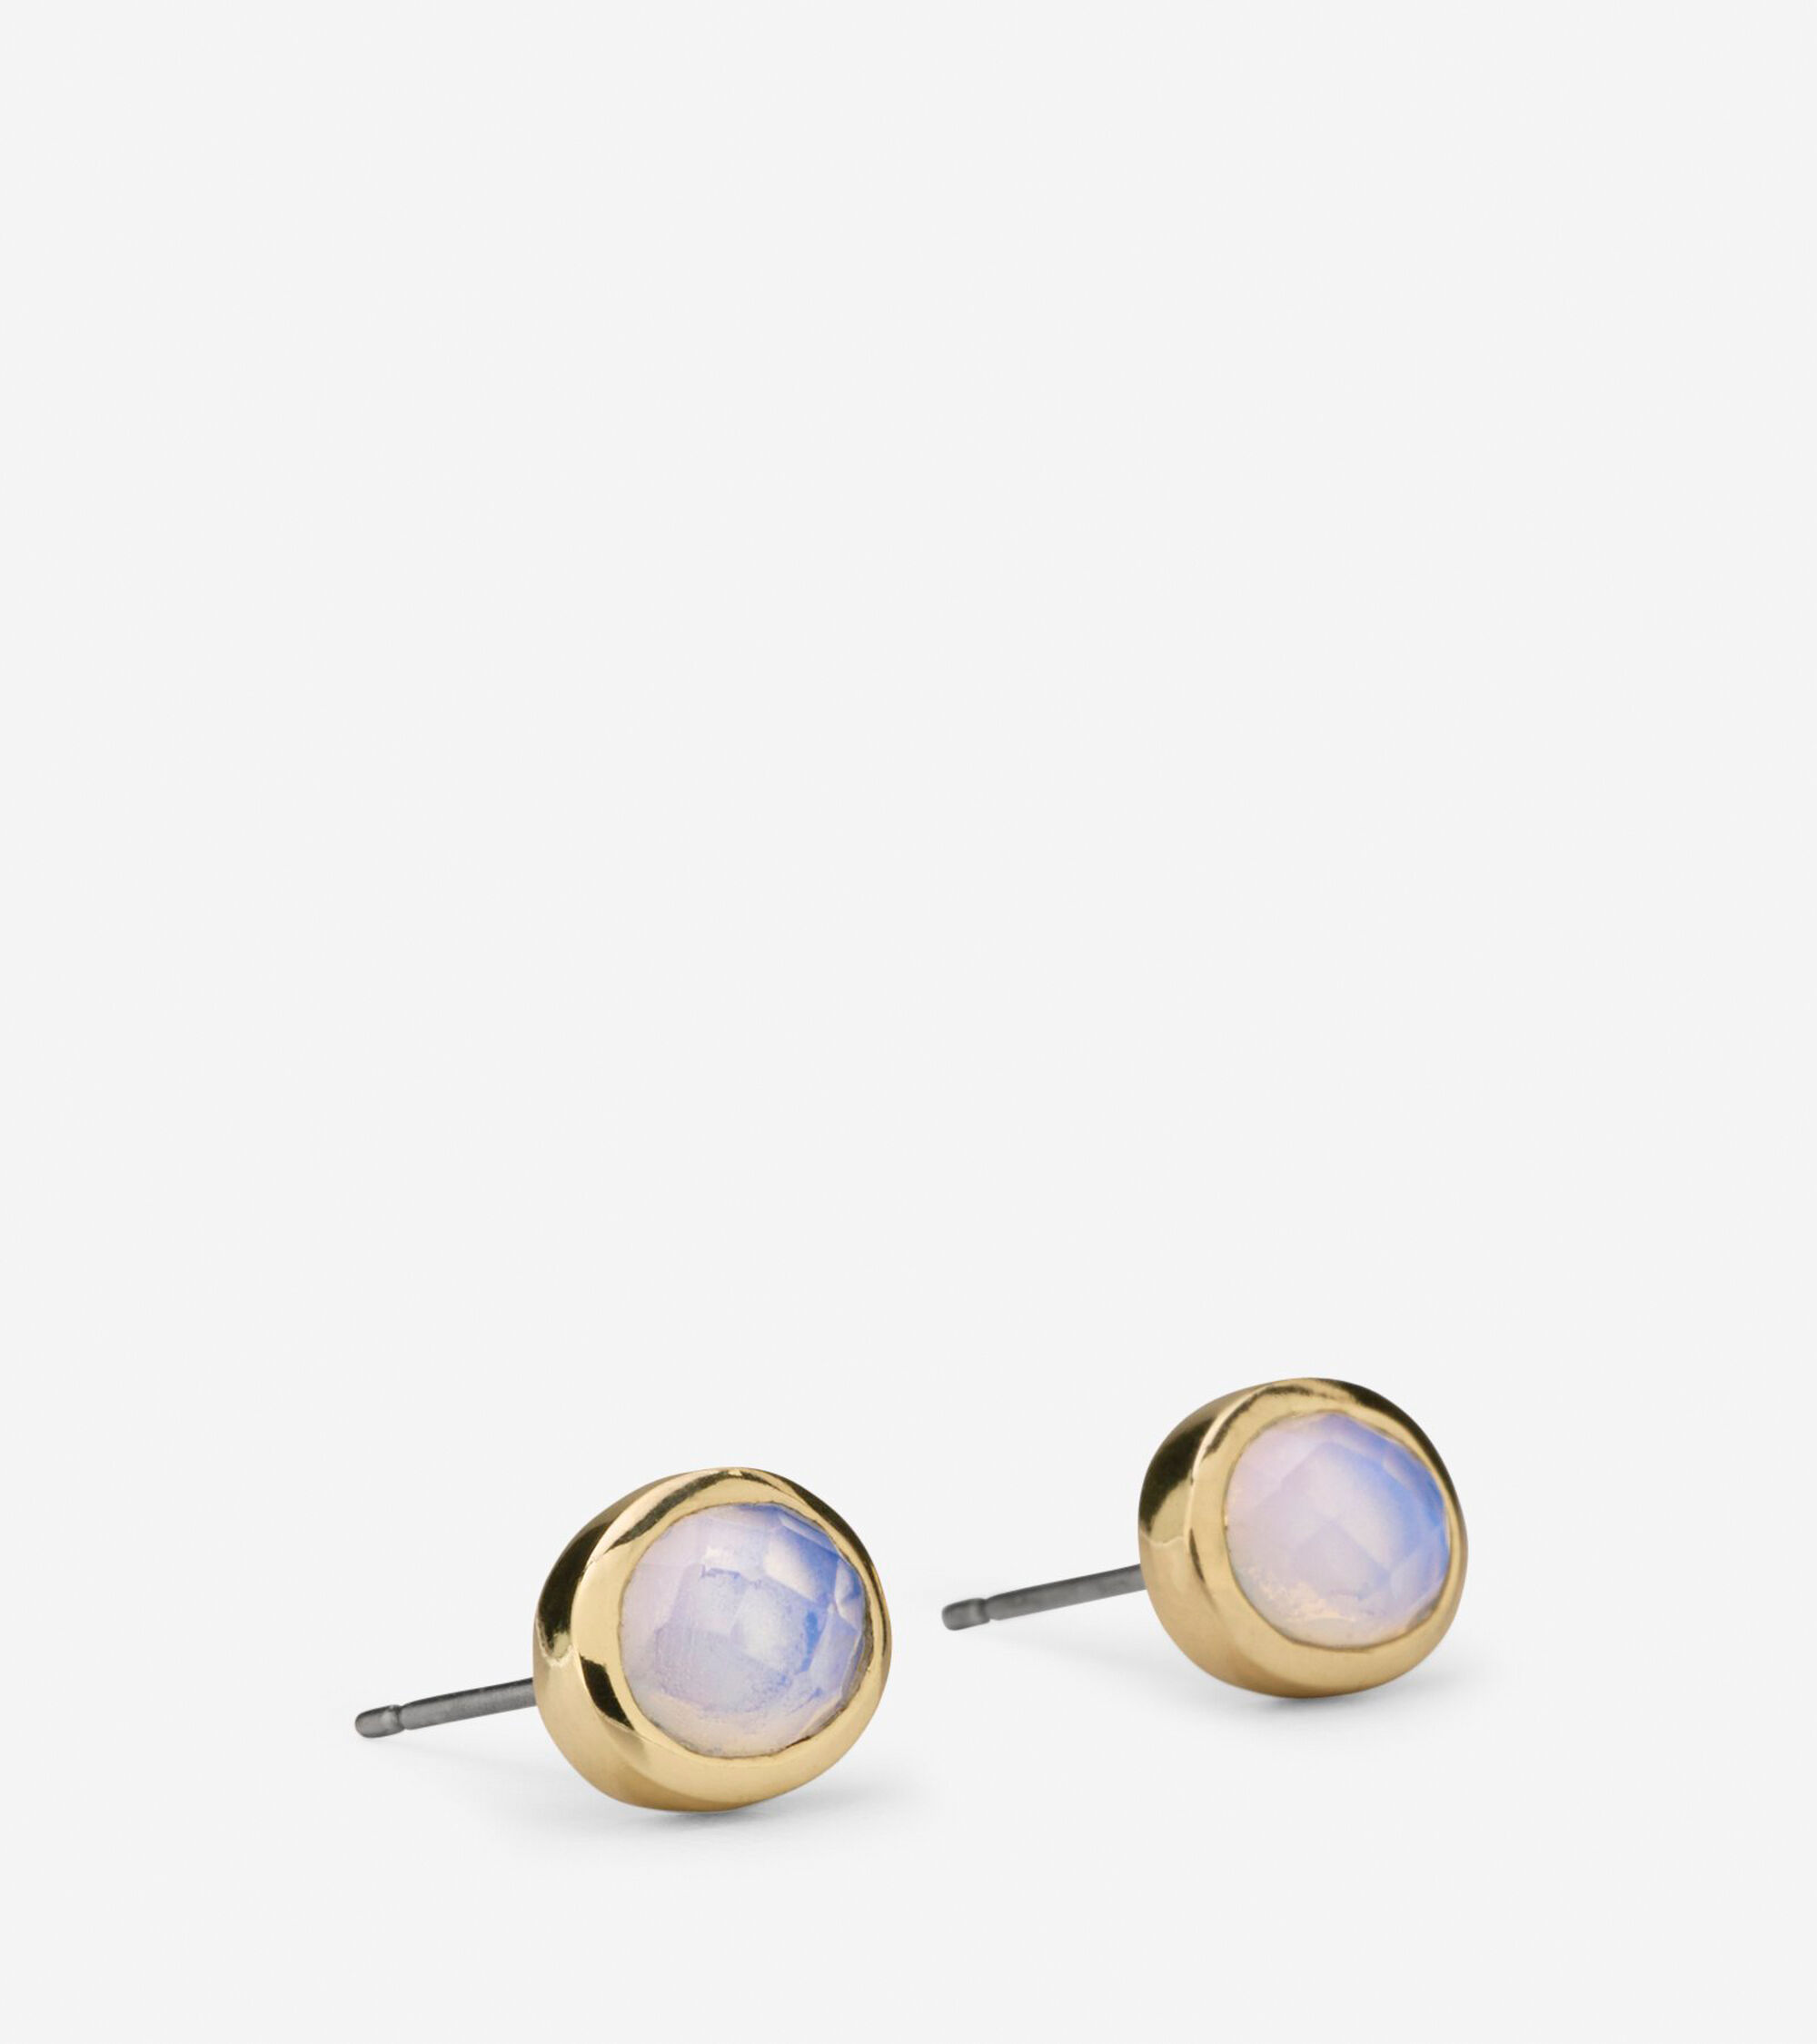 white big product stud oval earrings vintage glass tone gold pearly